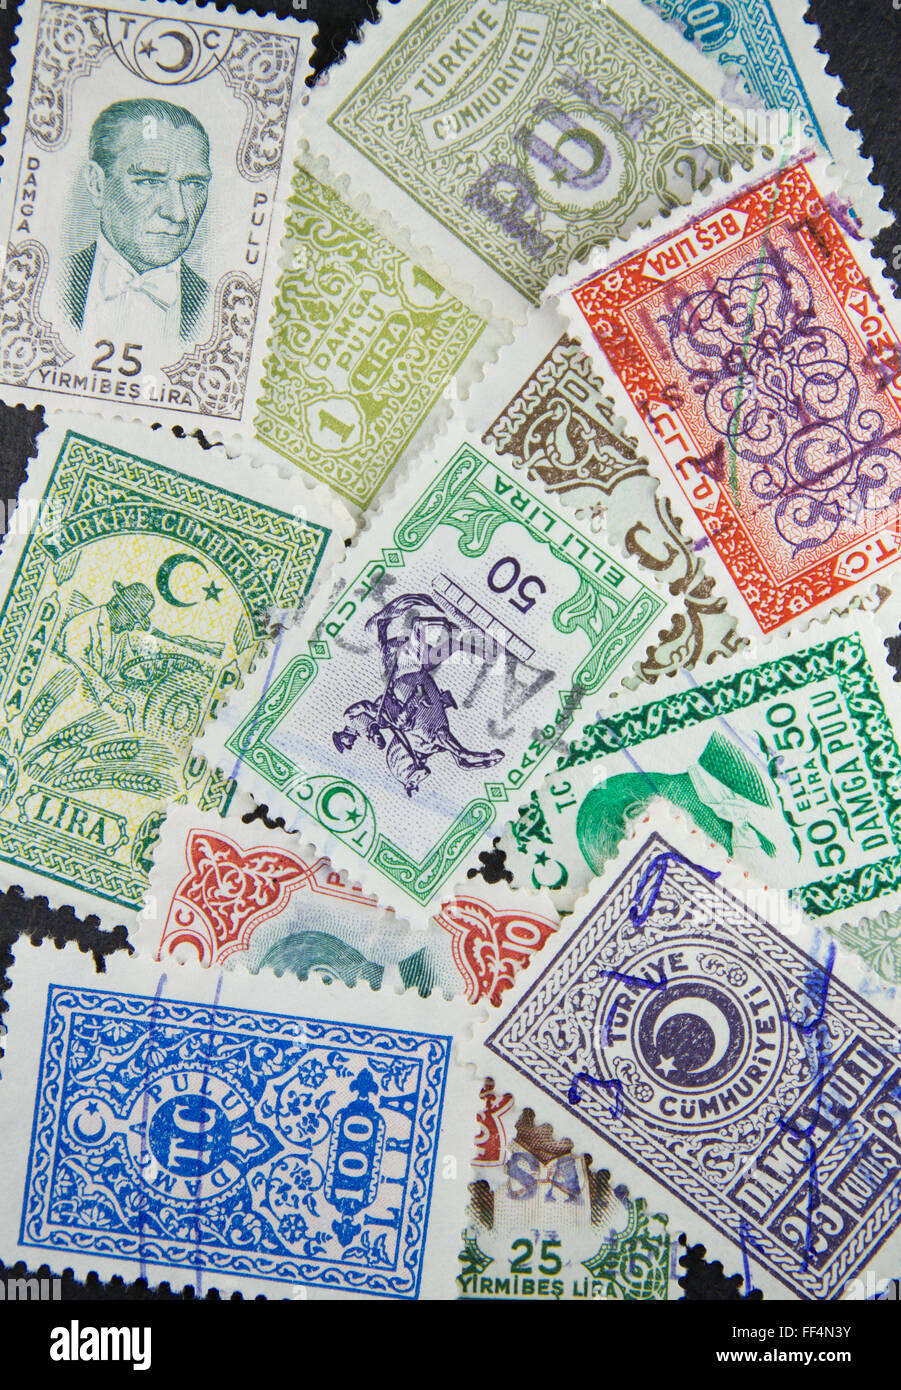 Stack of Turkish revenue stamps printed in Turkey circa 1970 - Stock Image